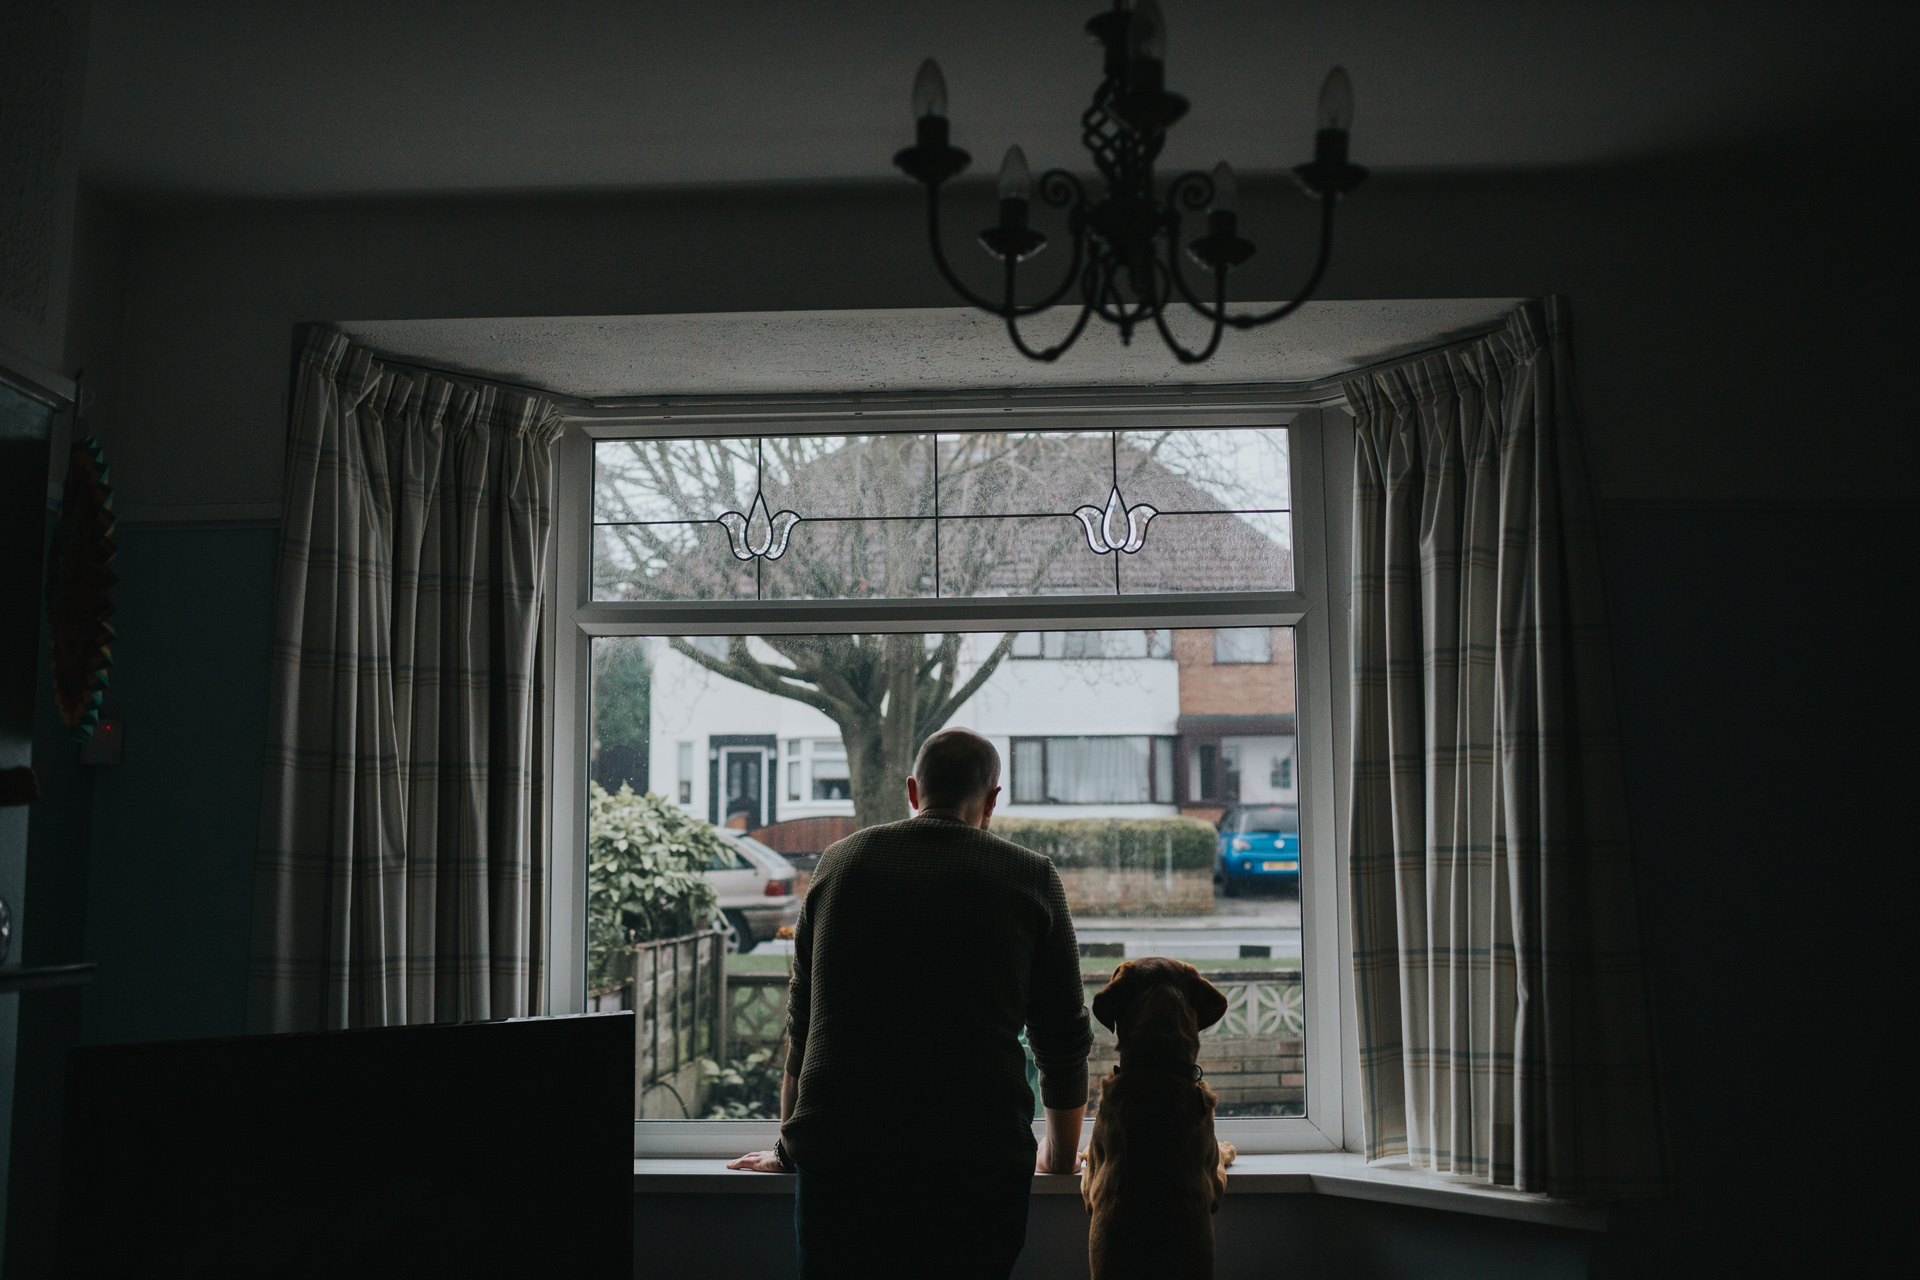 Dad and the family dog look out of the living room window together.